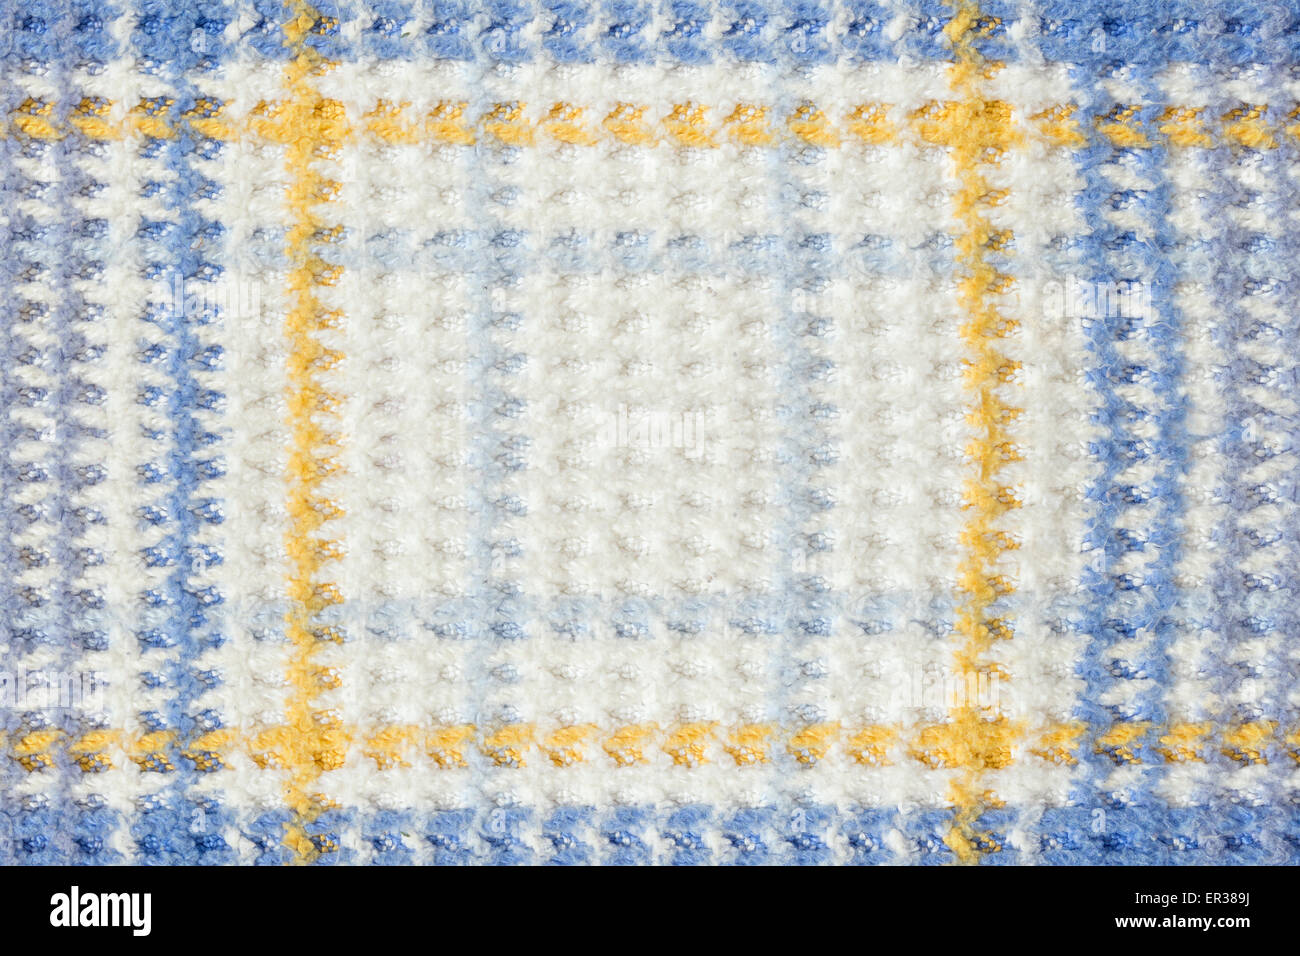 background of wool blanket detail with squares - Stock Image